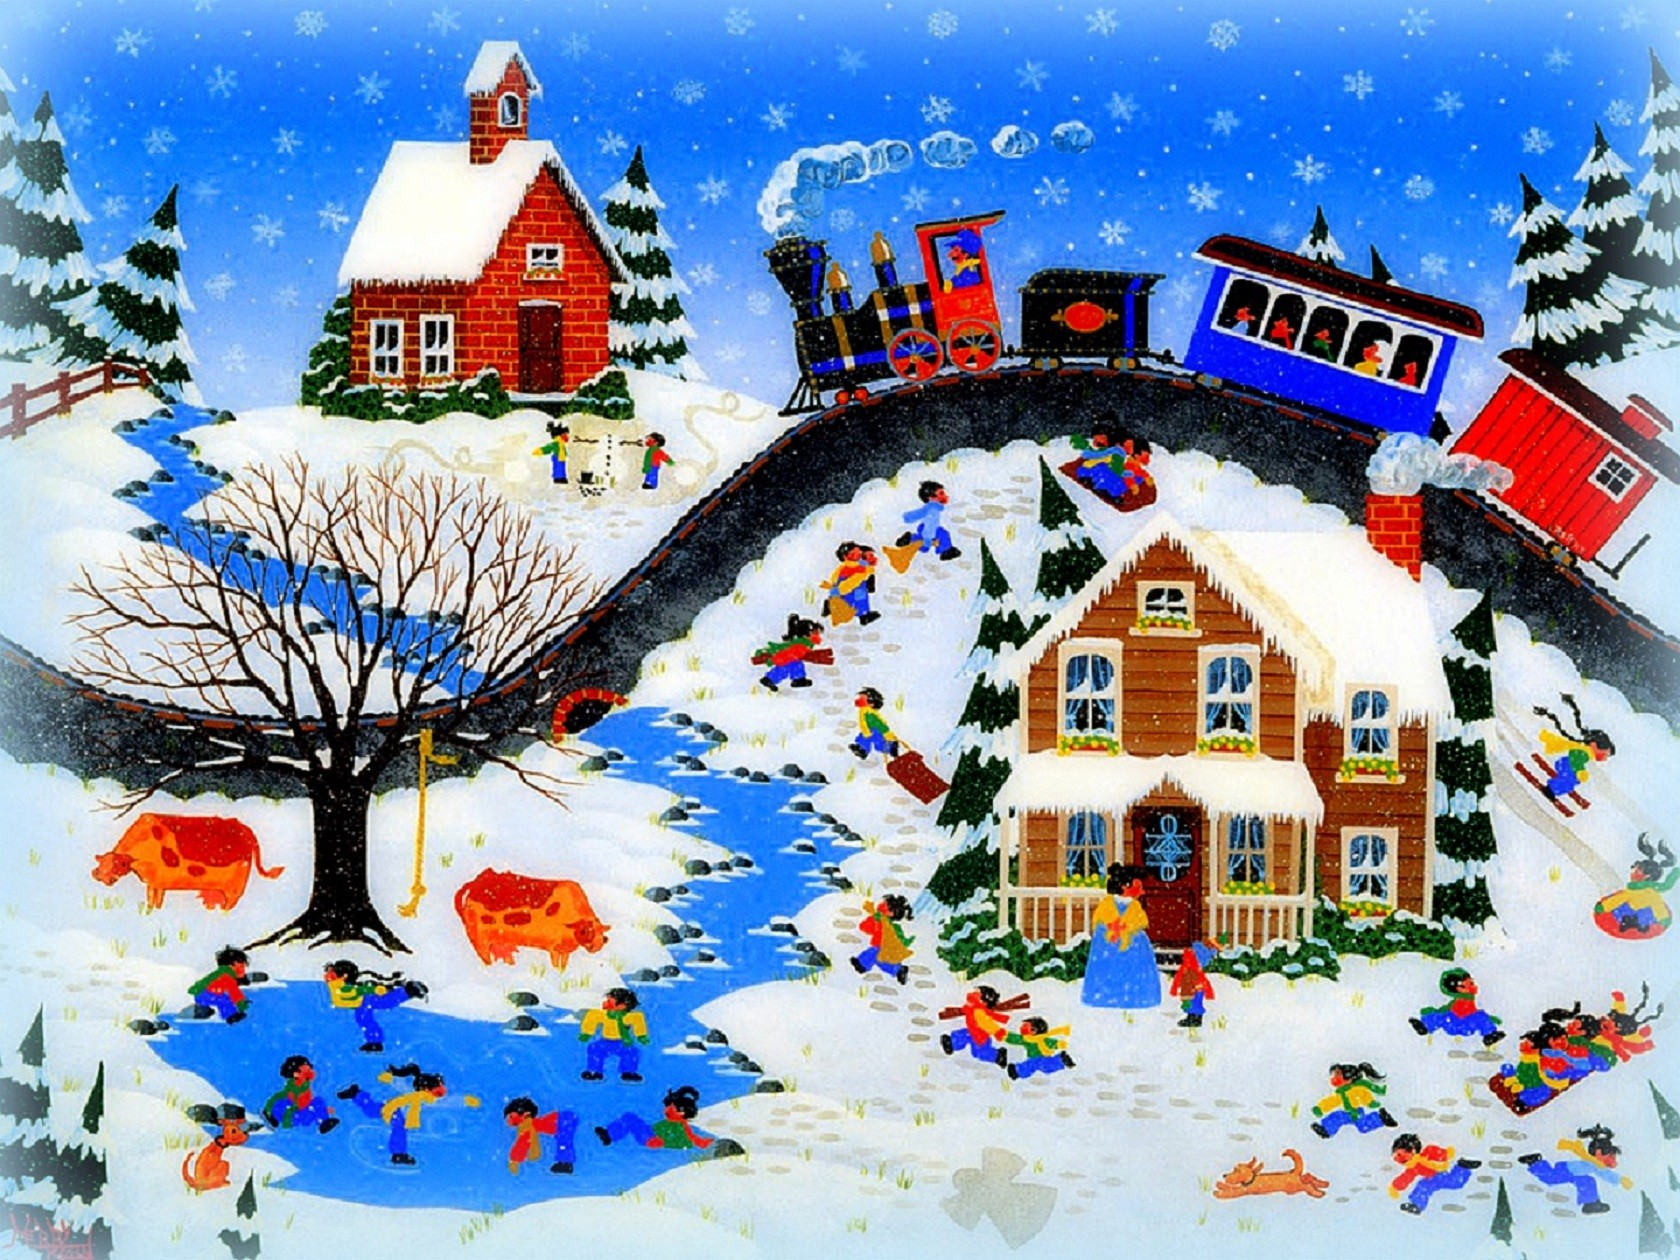 Merry-Christmas-Kohn-Buvia-Xmas-New-Year-Paintings-Villages-Trees-Winter-Love-Seasons-Traditional-Ar-wallpaper-wpc9007532